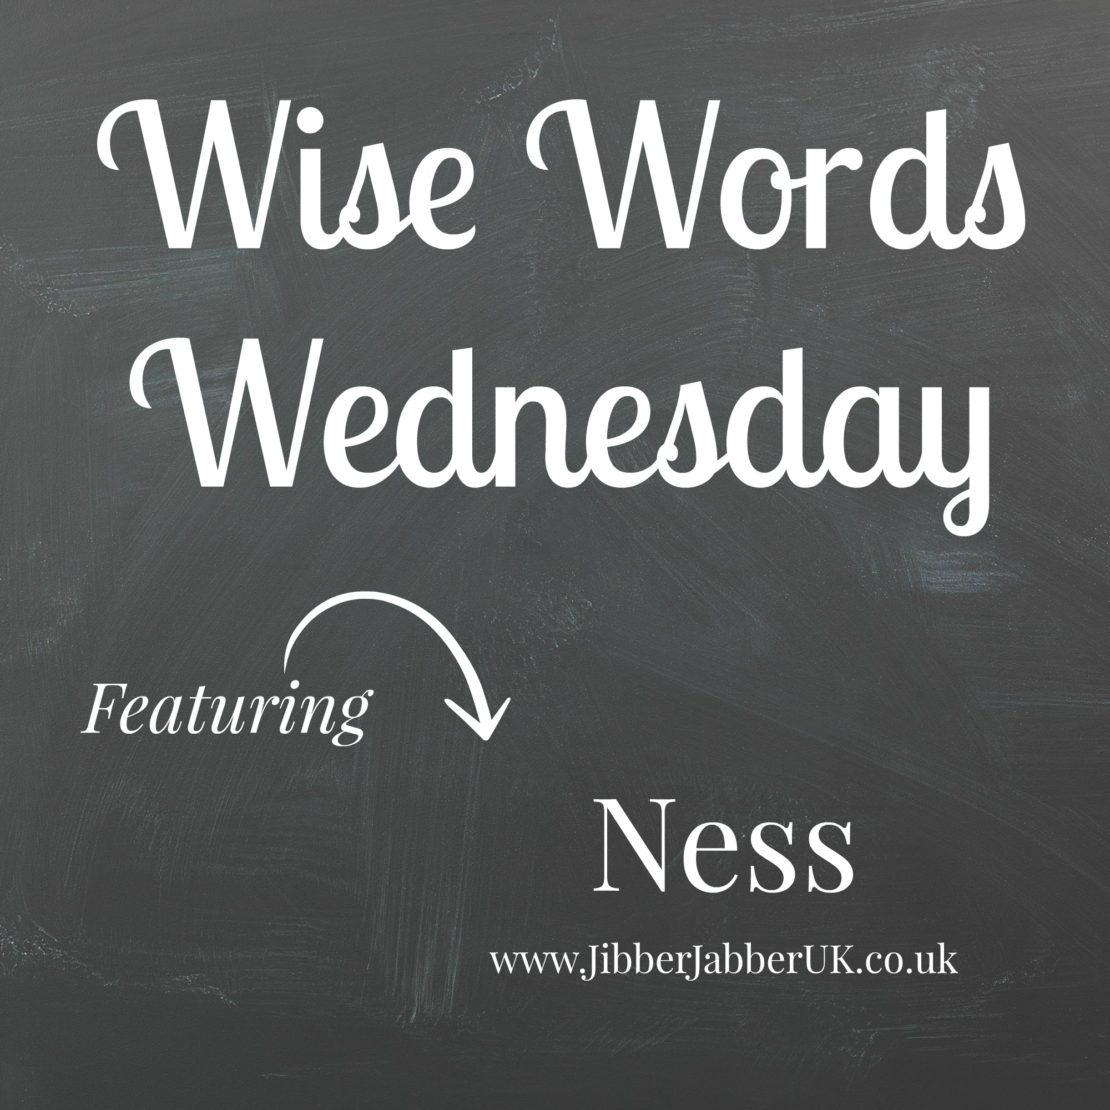 Wise Words Wednesday with Ness